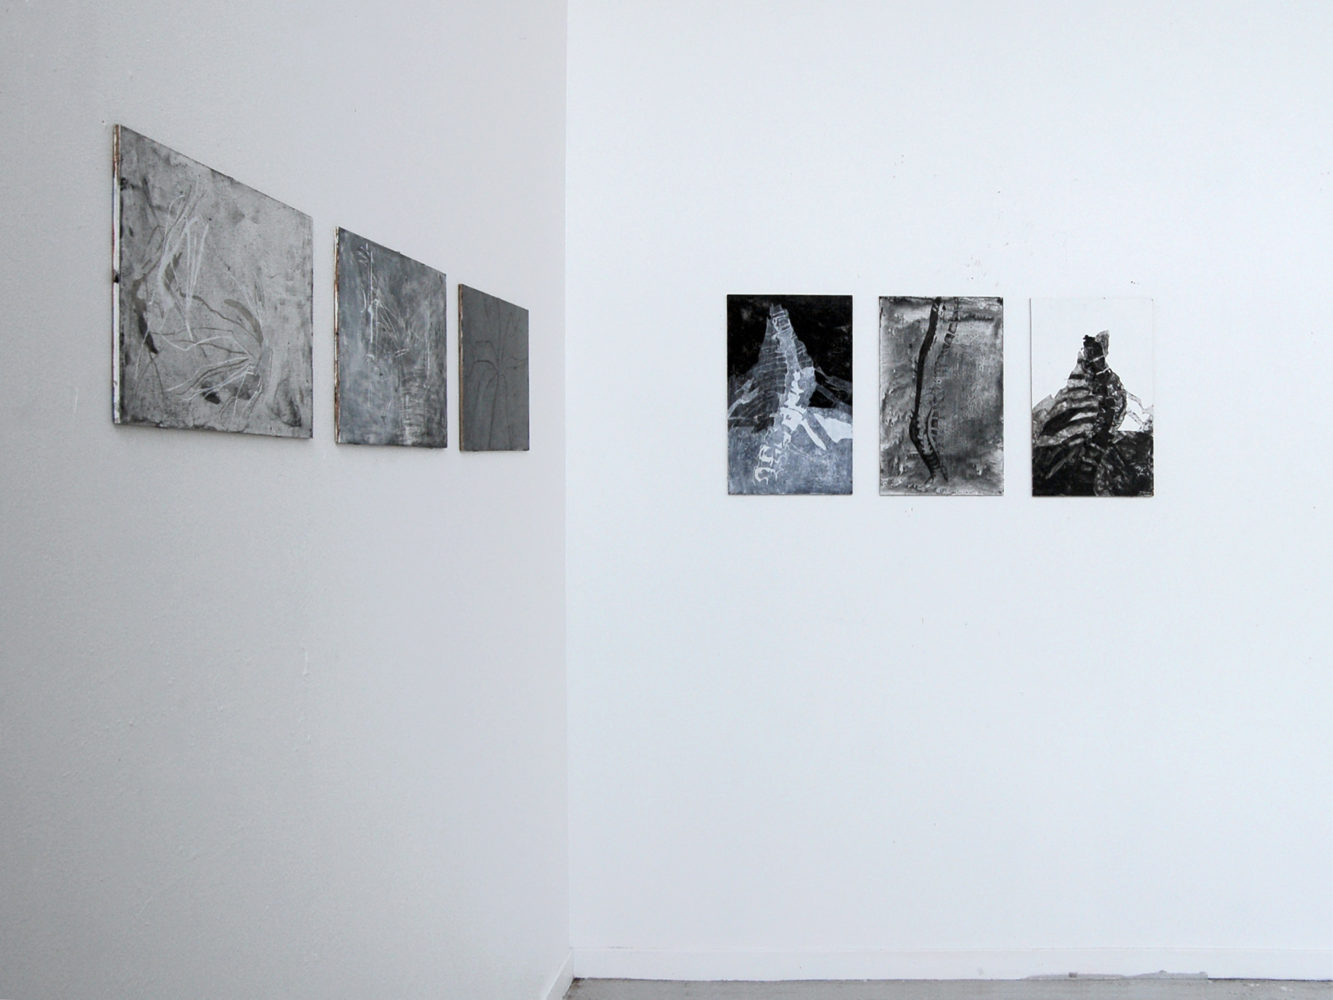 Crooked, Straight, Crooked